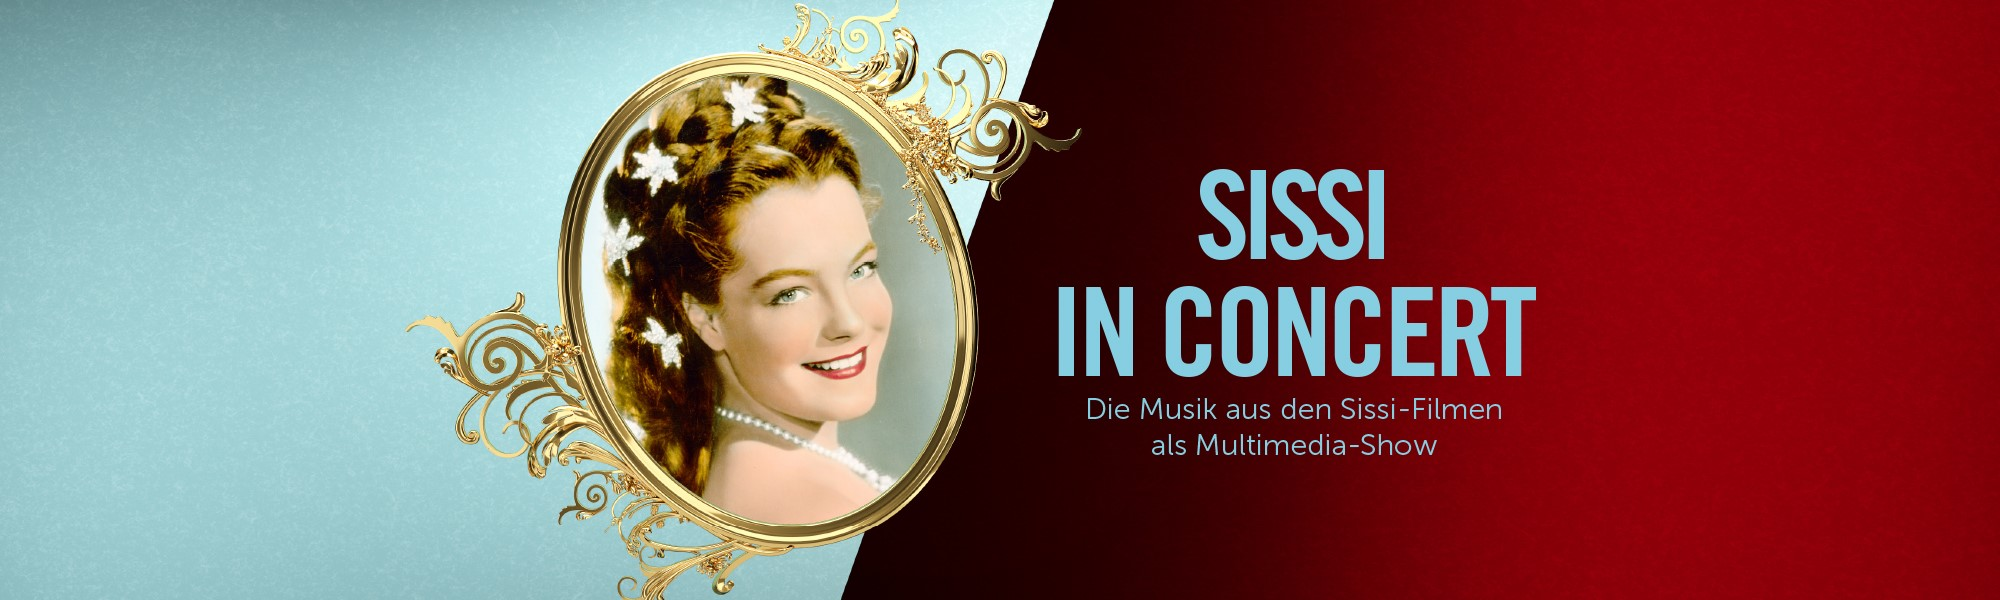 Sissi in Concert in Bad Ischl